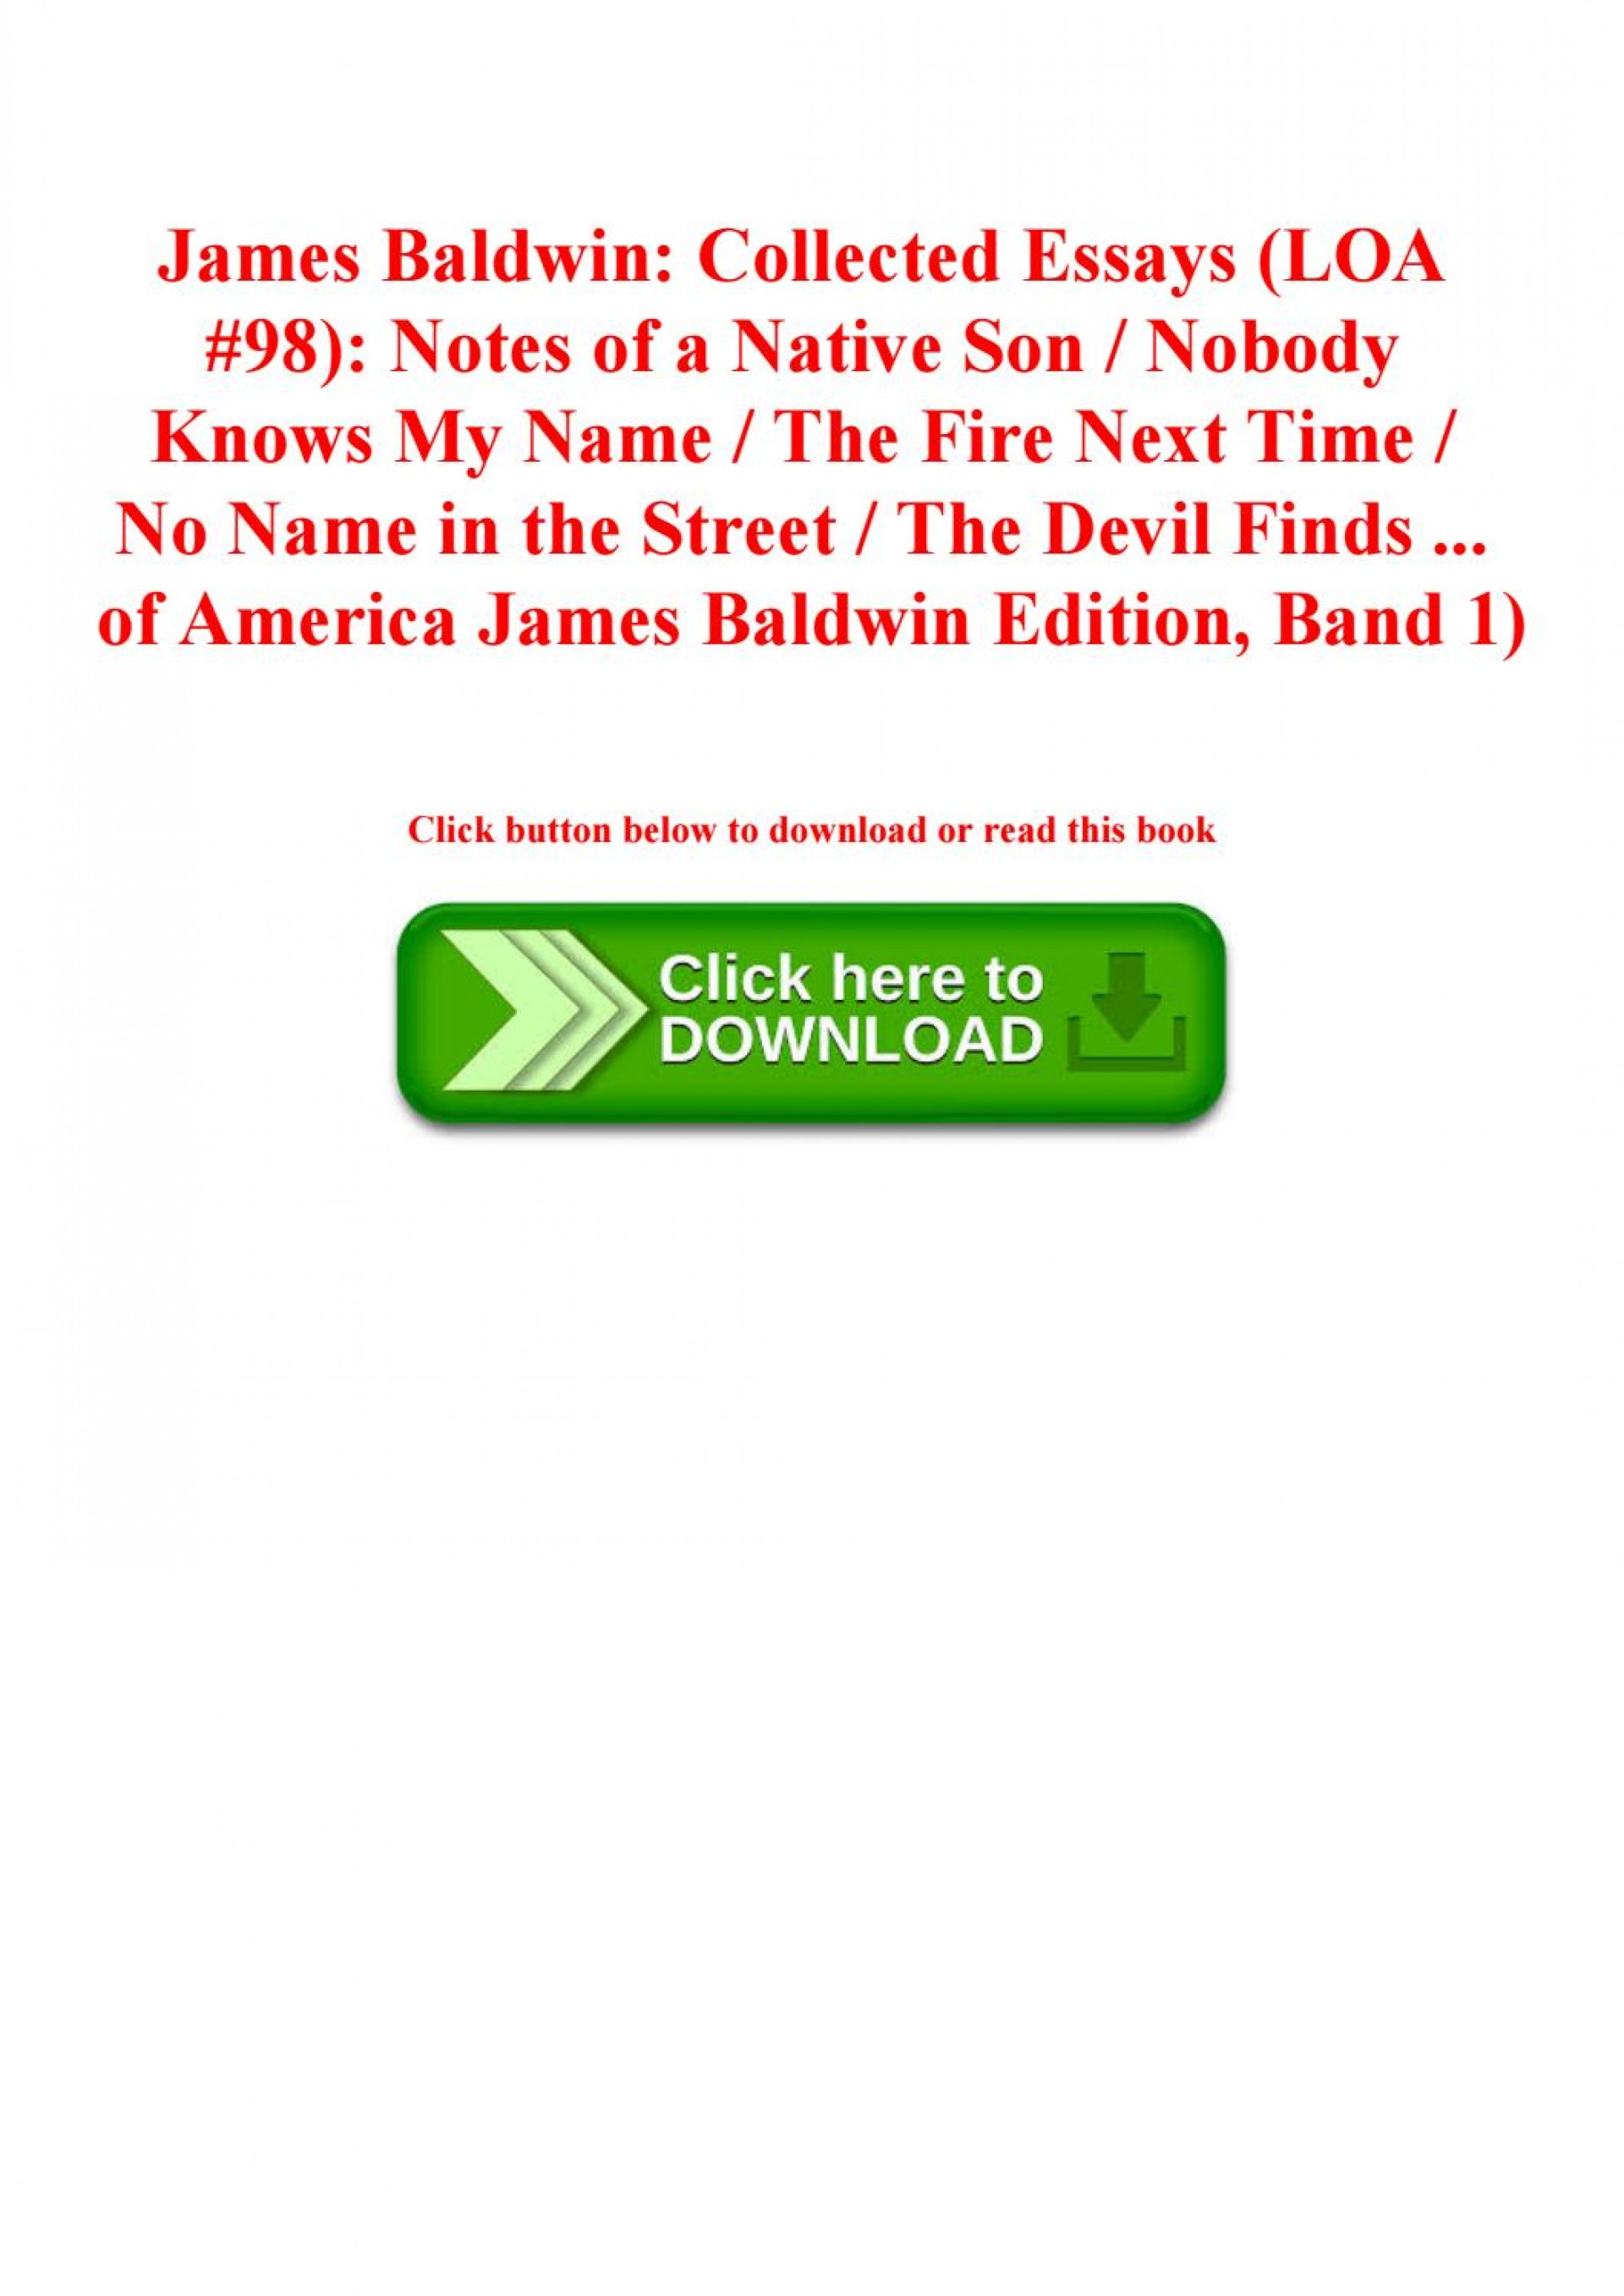 024 James Baldwin Collected Essays Essay Example Page 1 Wondrous Google Books Pdf Table Of Contents 1920